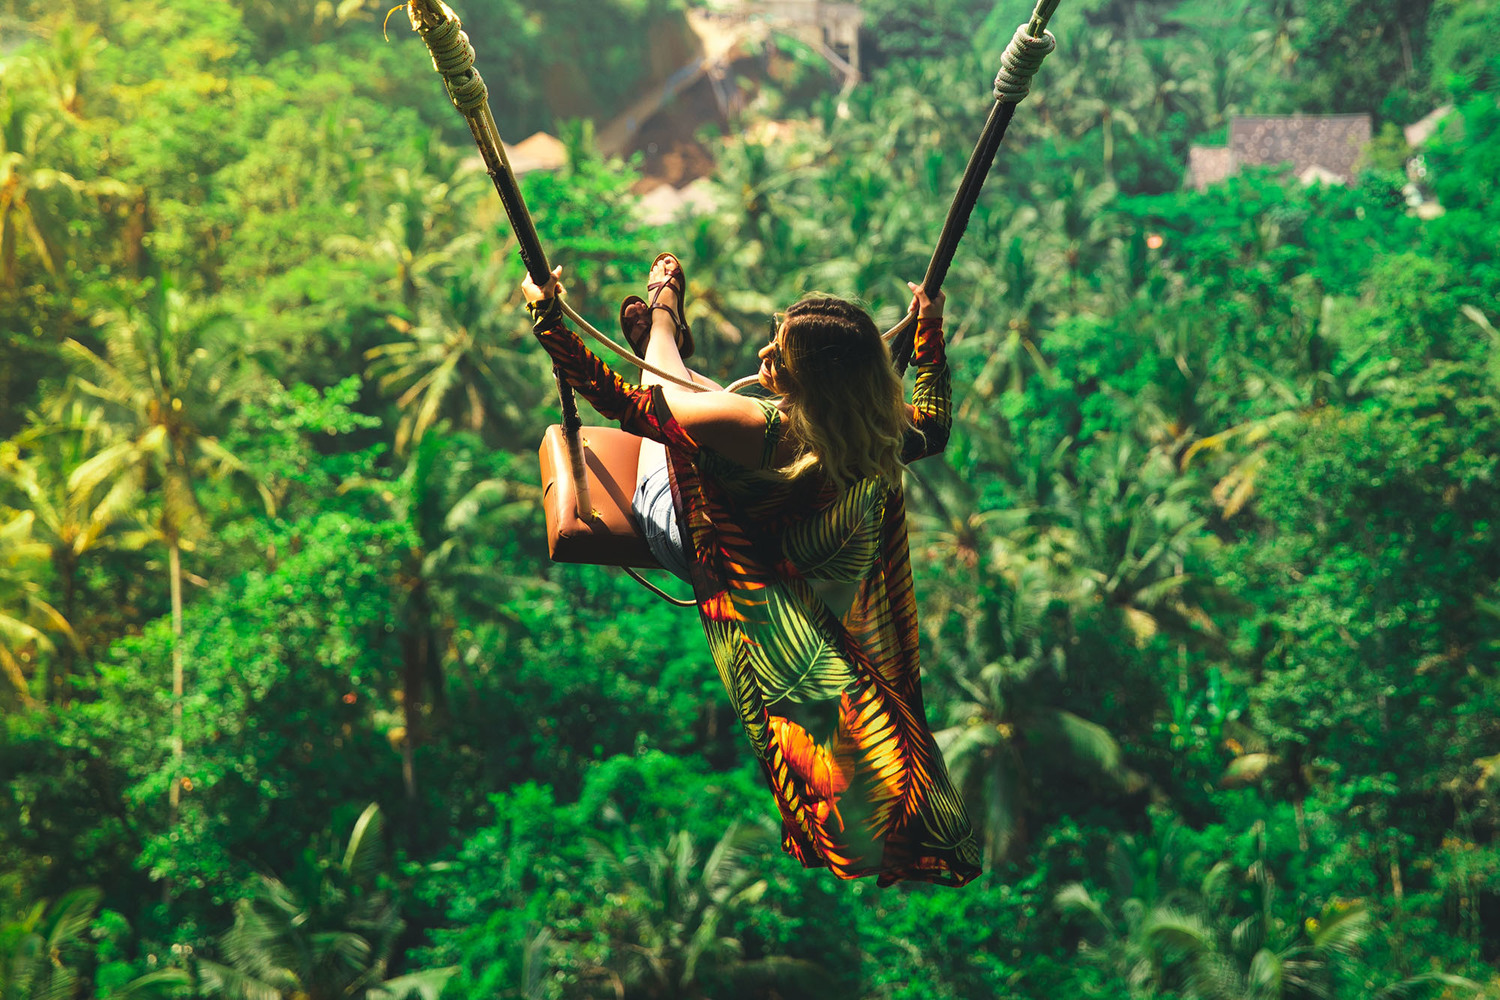 Person, Vegetation, Outdoors, Land, Nature, Adventure, Bungee, Rope, Tree, Jungle